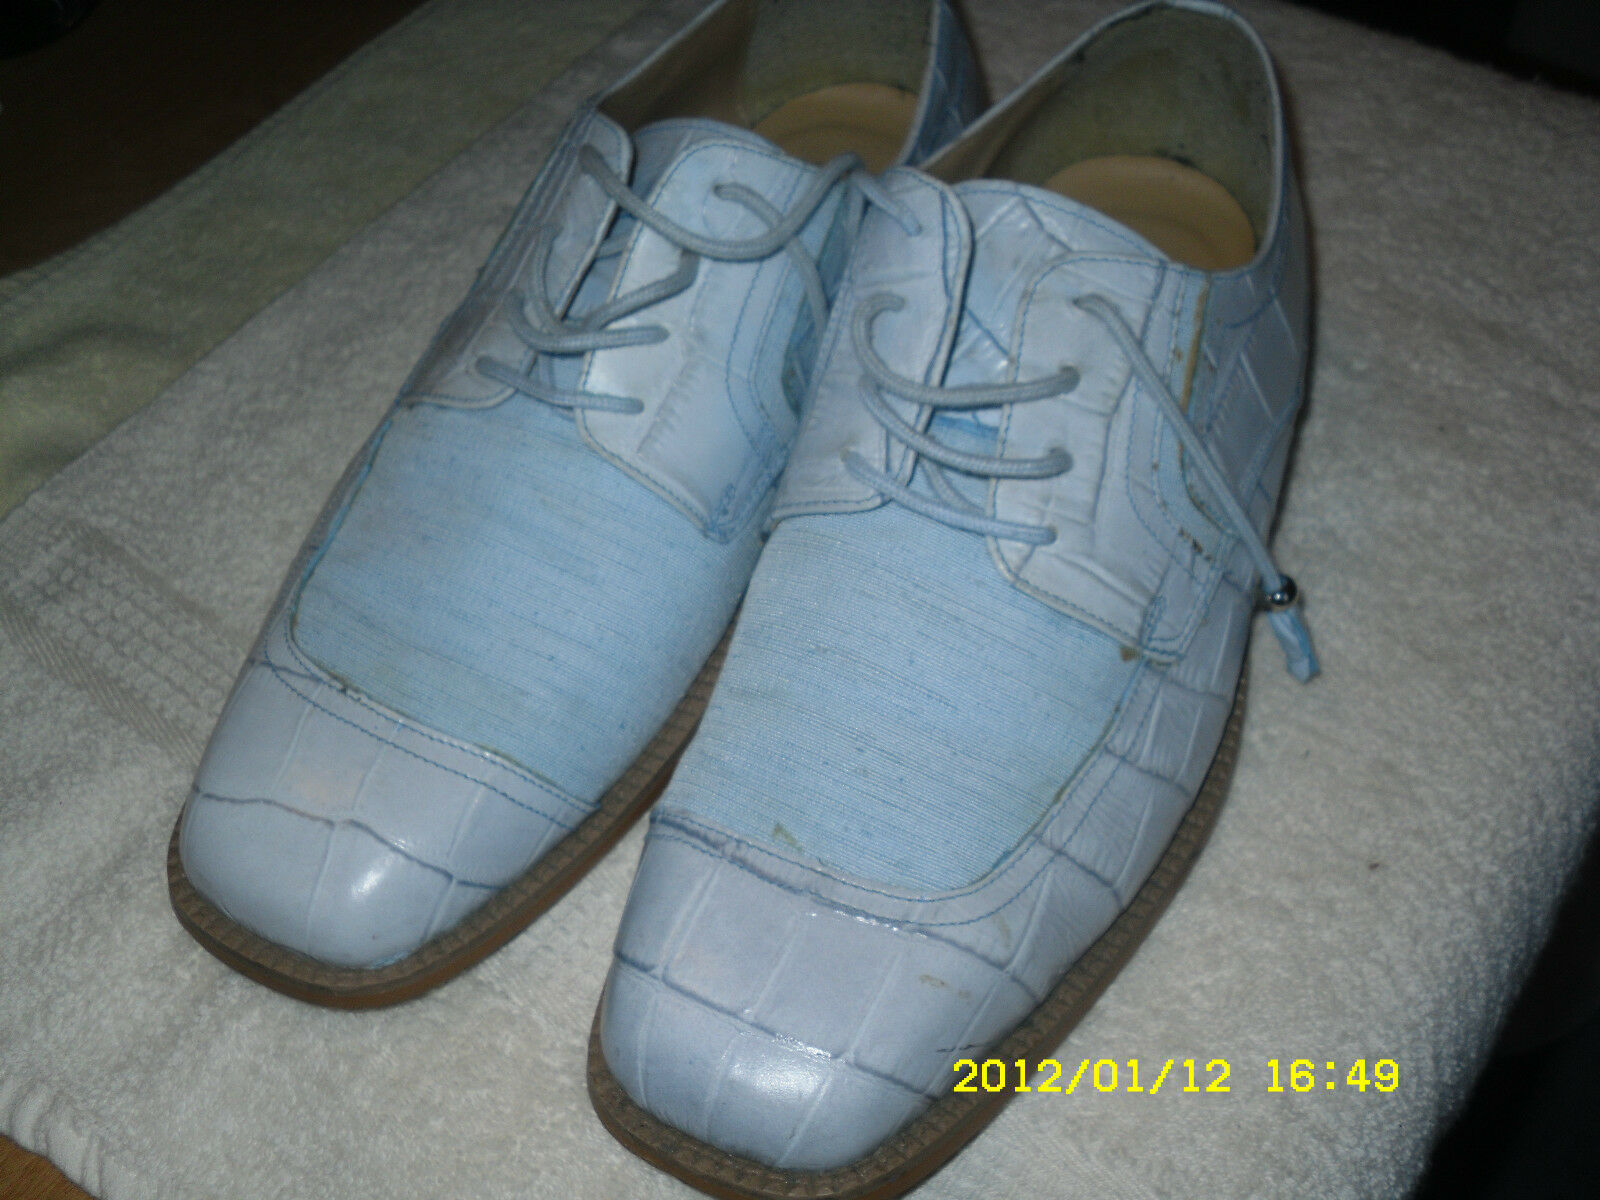 Donato brown 10  Baby bluee Oxfords Lace up Leather Upper Pre-owned